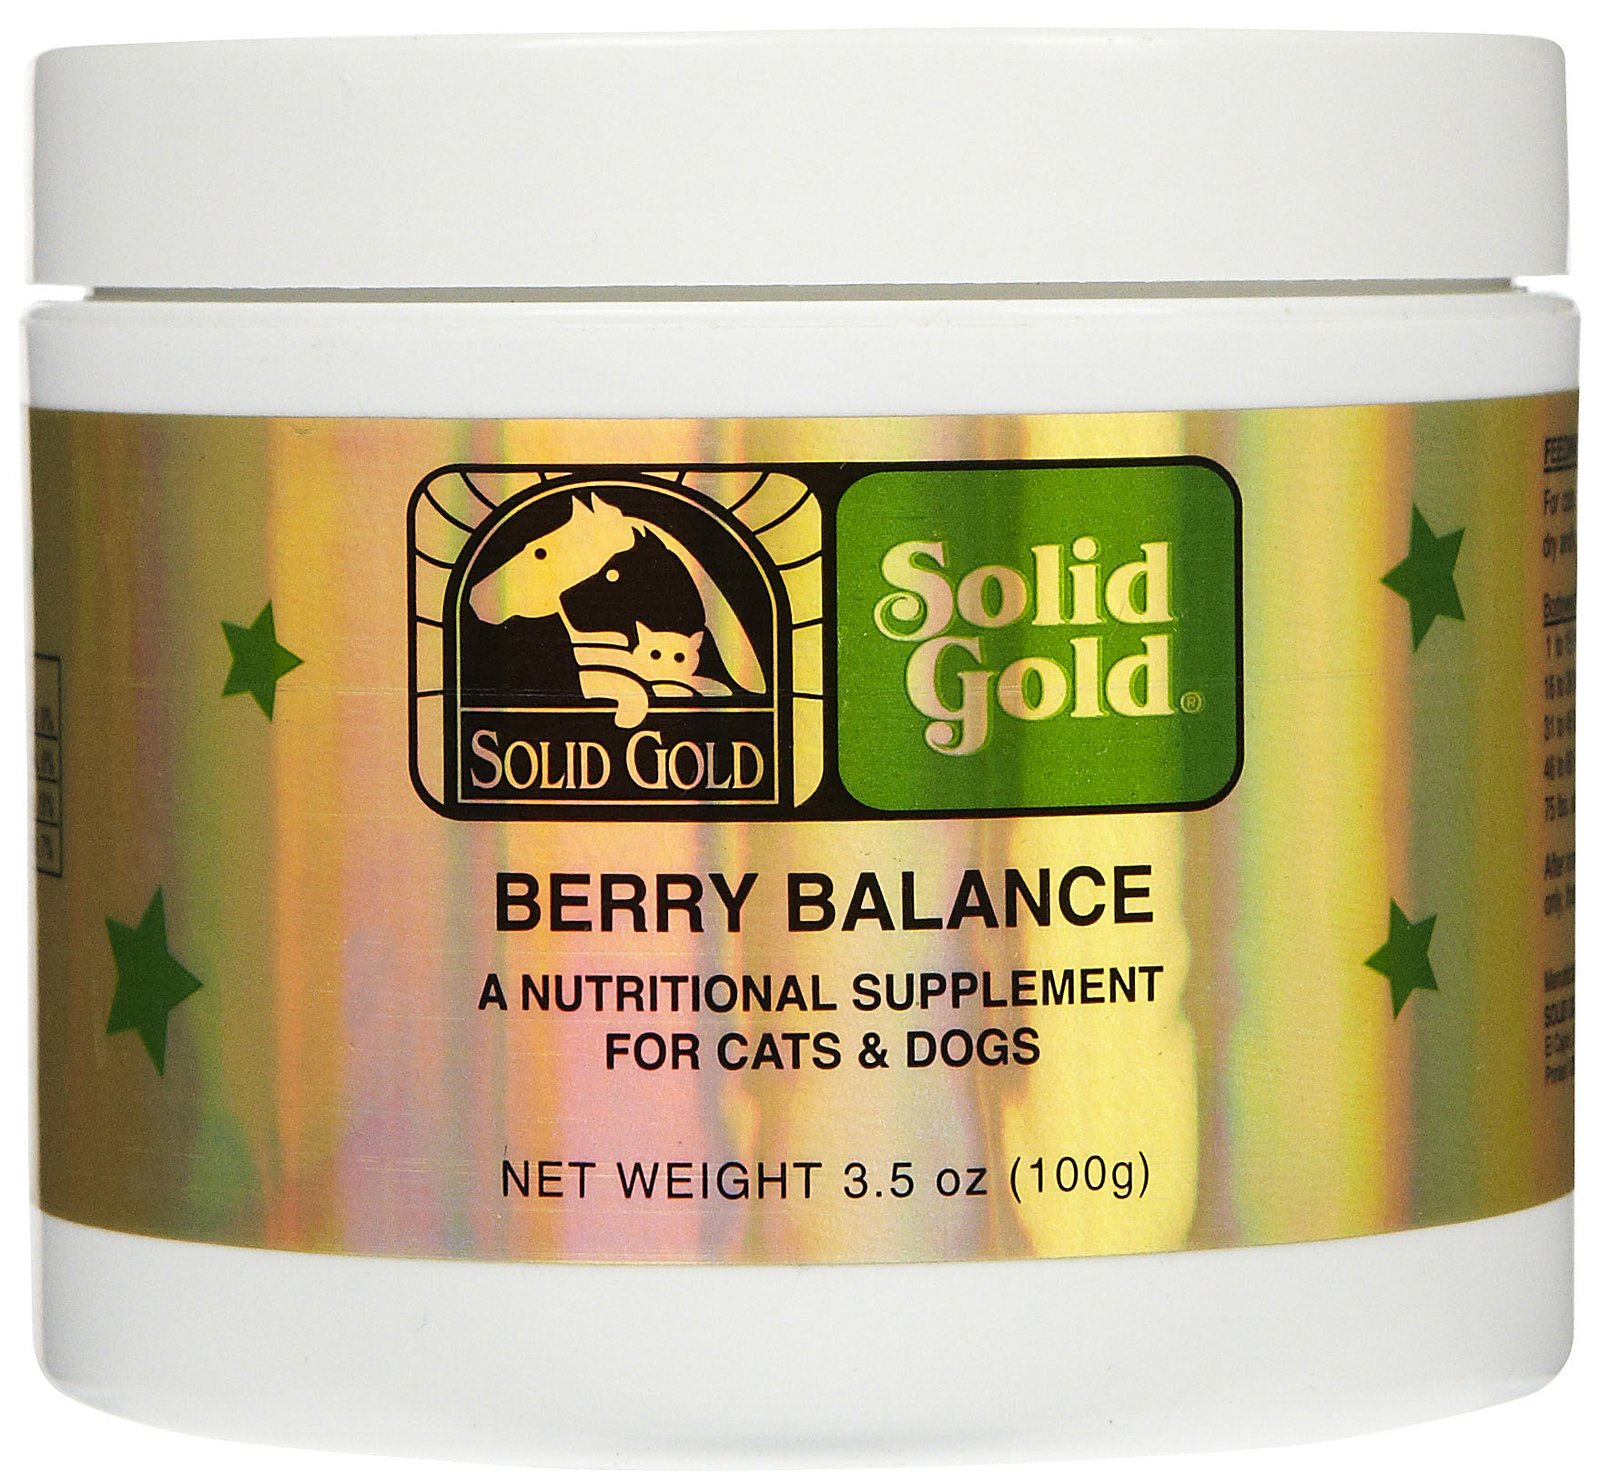 Solid Gold Berry Balance Dog & Cat Supplement